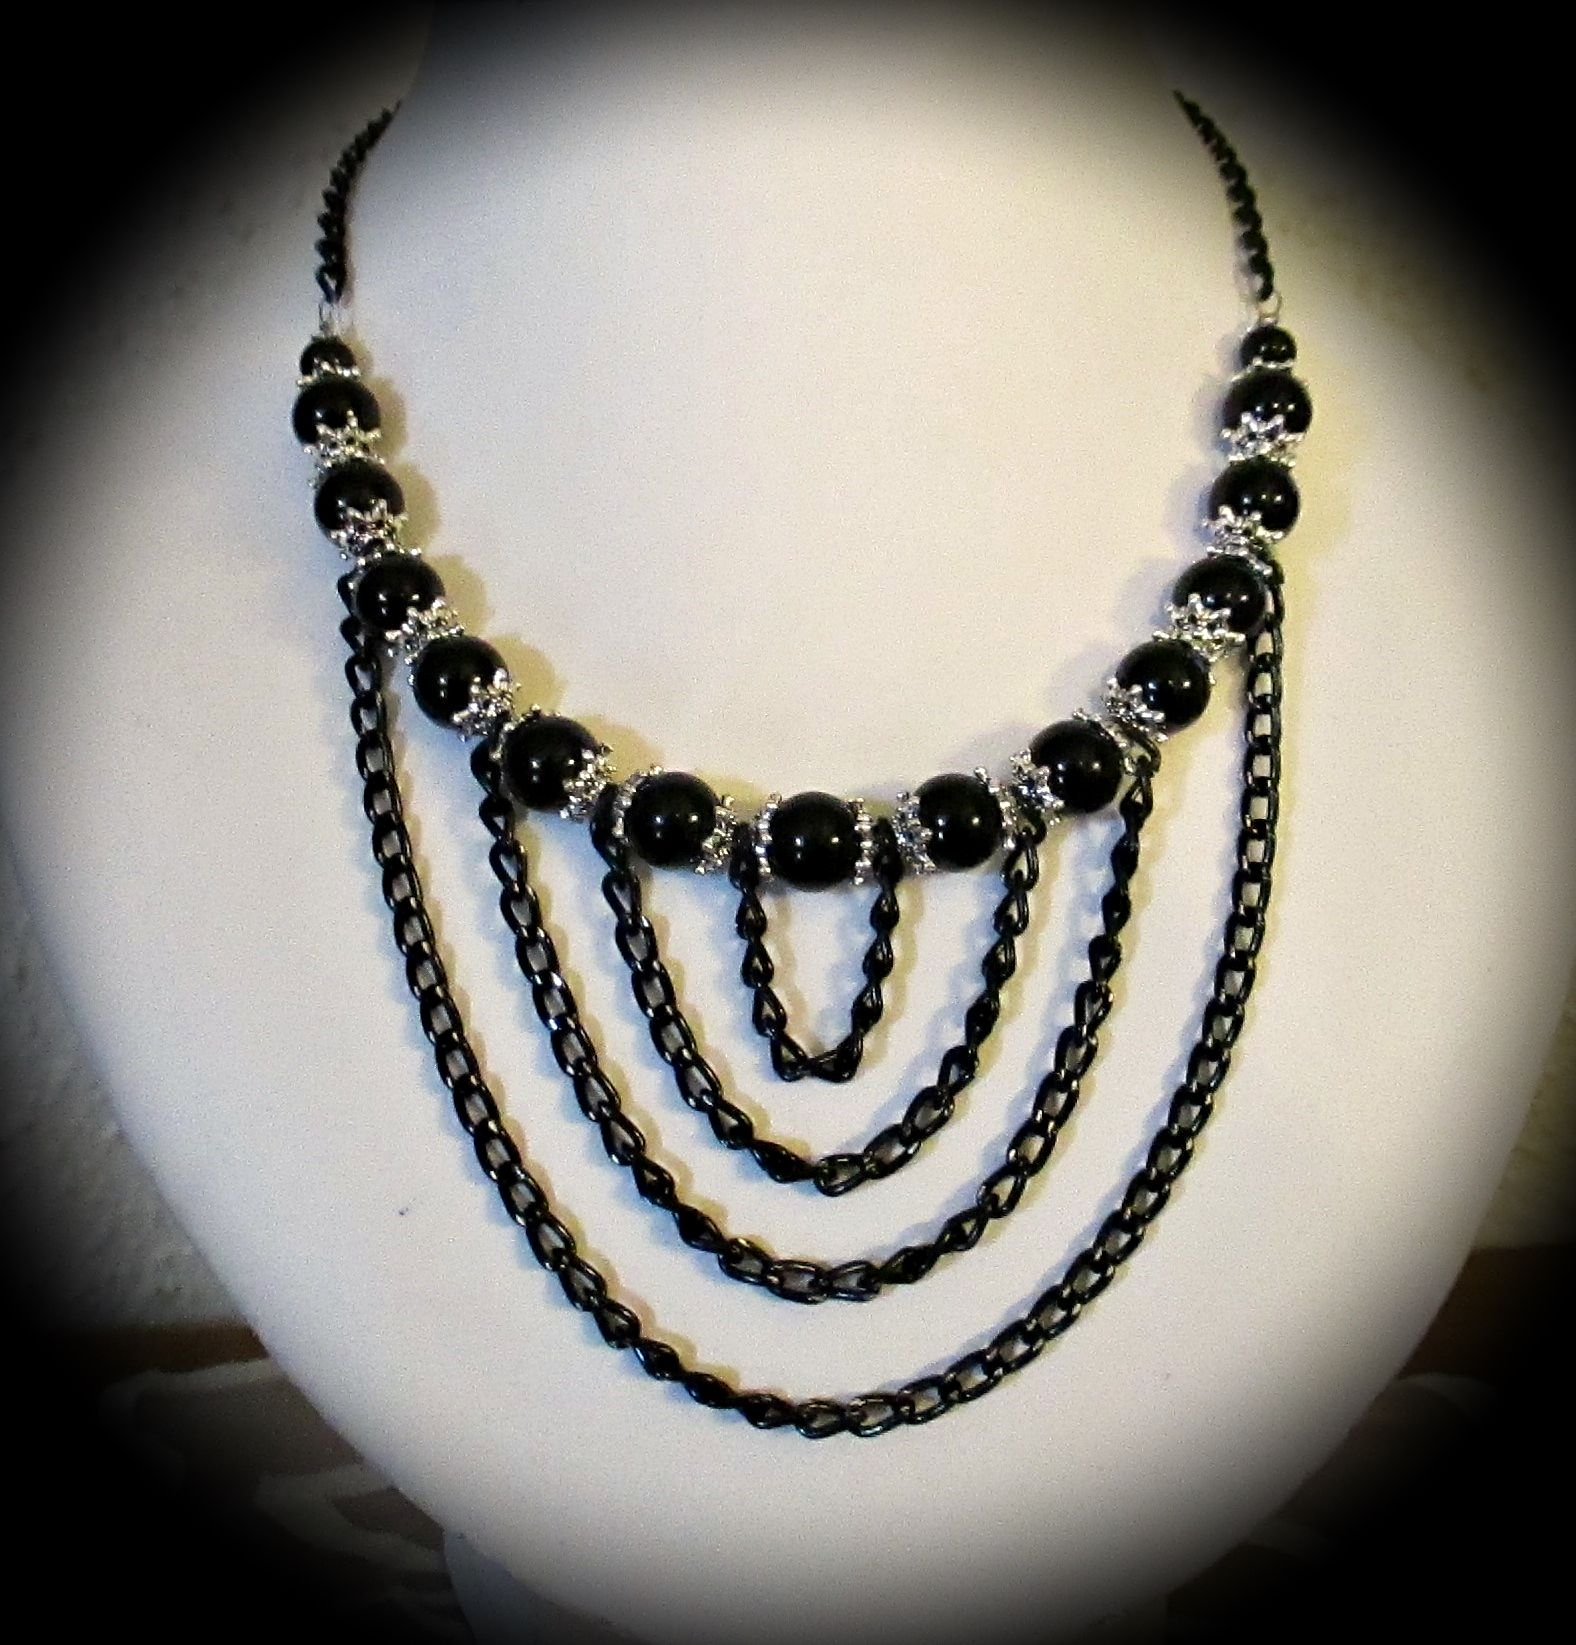 Black beads and black Chain necklace :-)